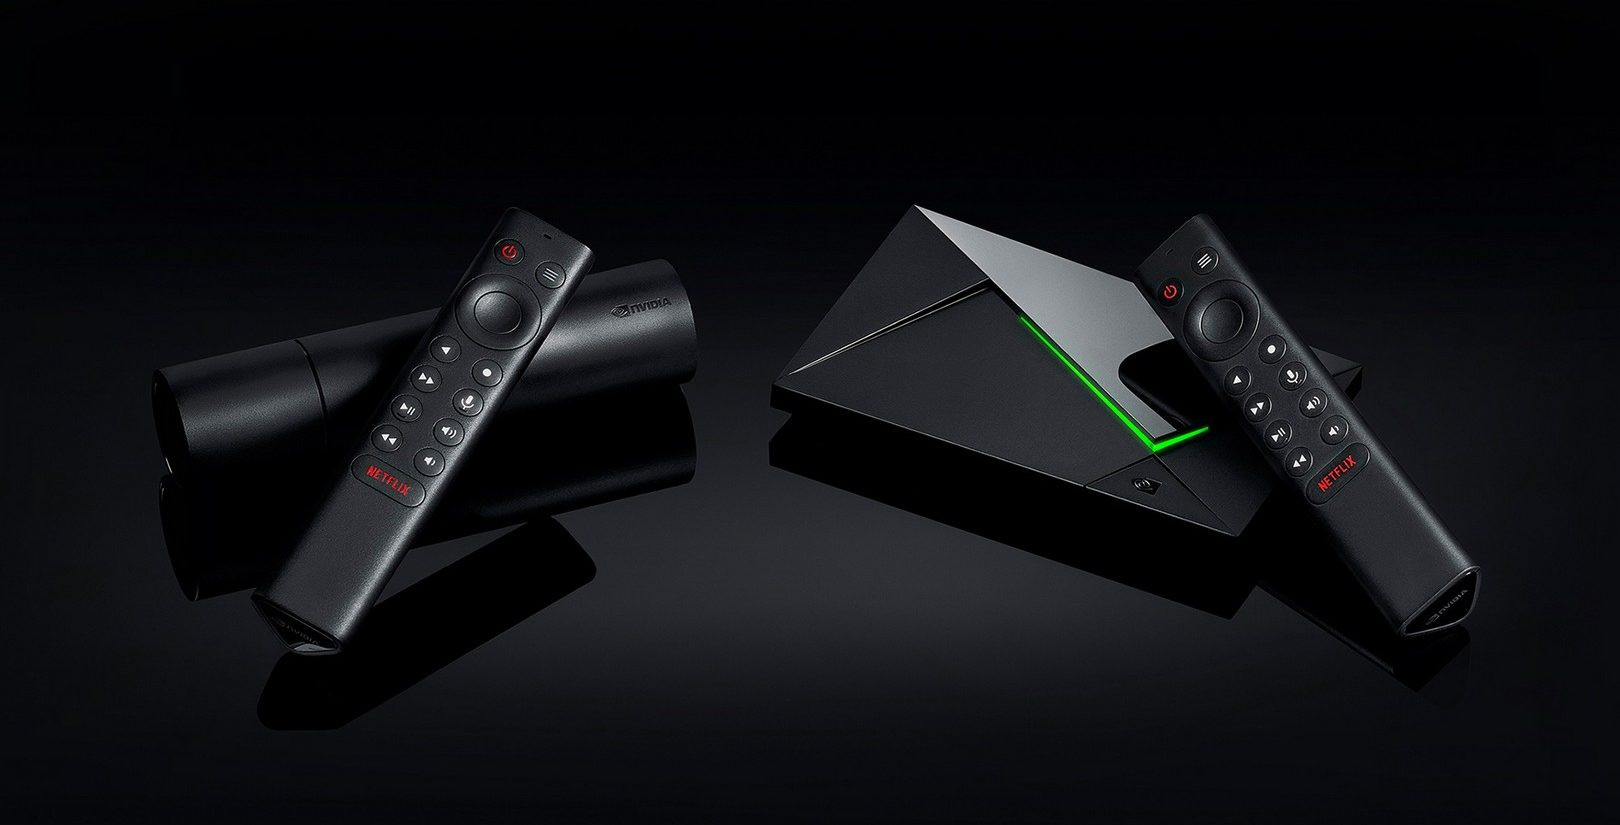 NVIDIA's new Shield TV ups the Android streaming game